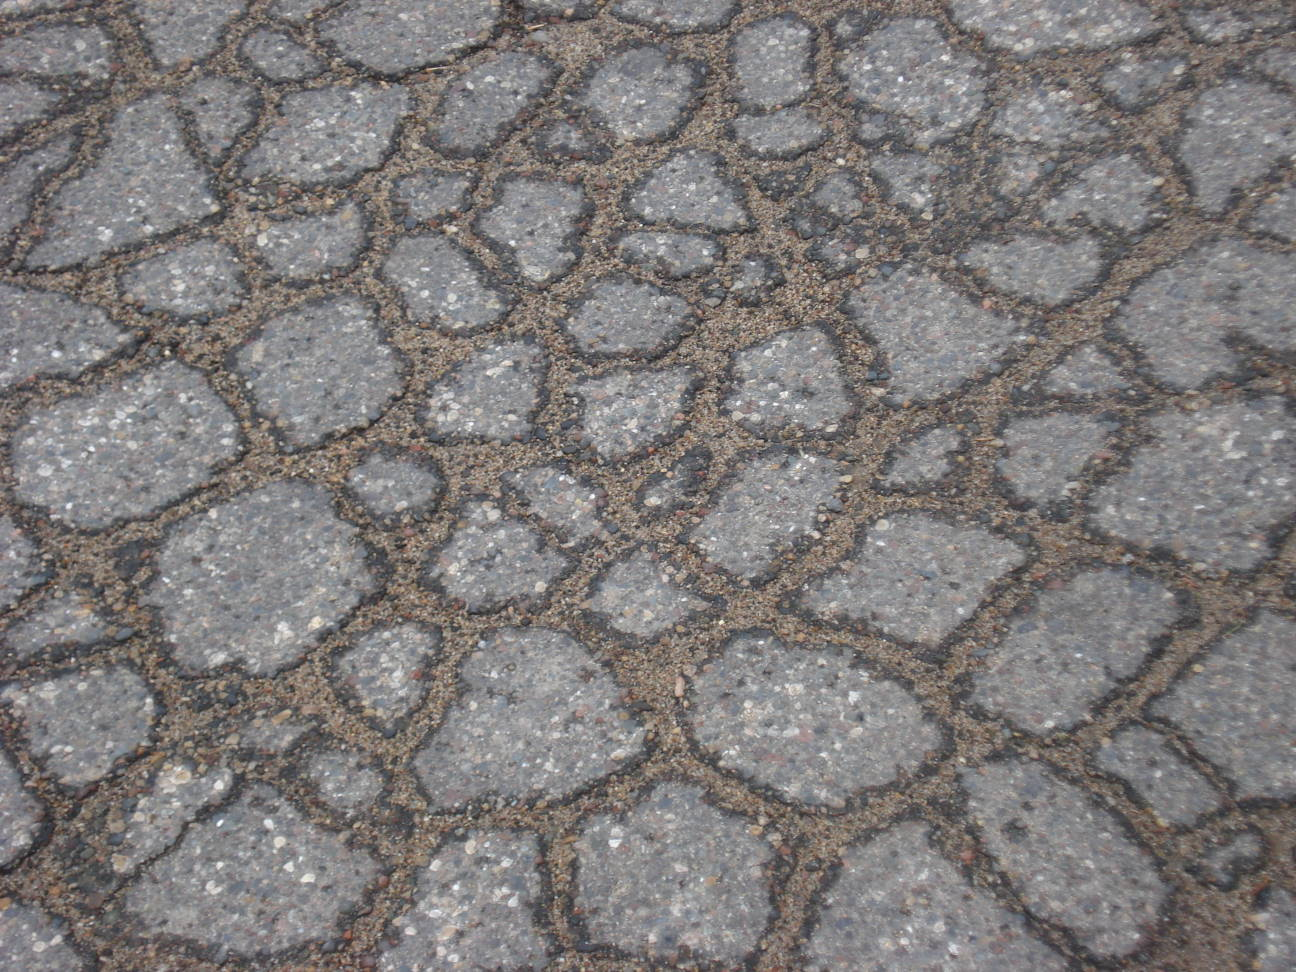 Broken pavement, Mary Warner, 2013.